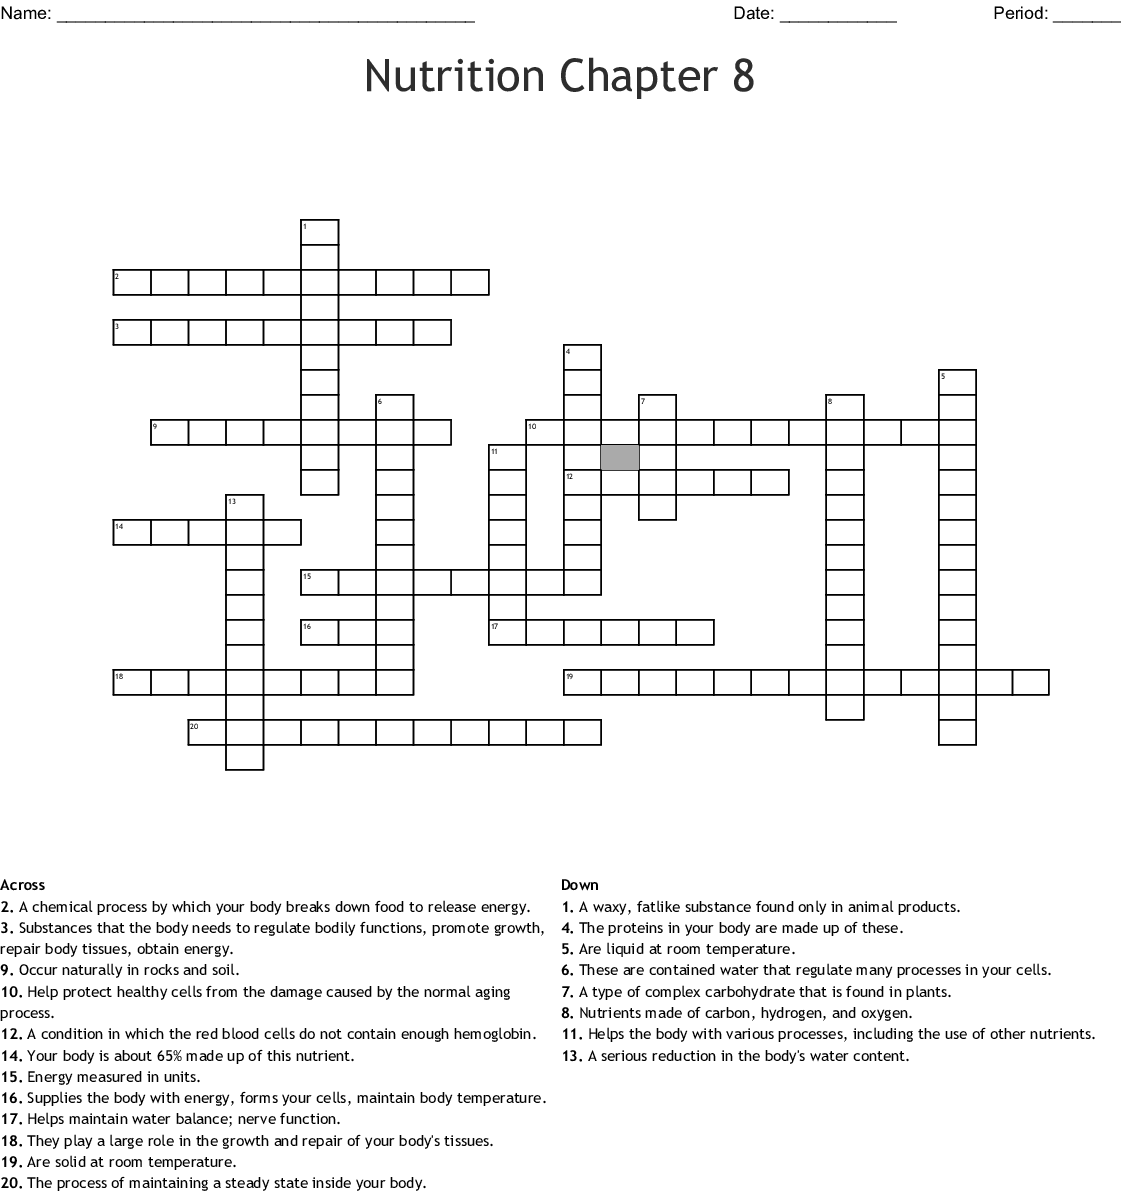 Nutrition Chapter 8 Crossword